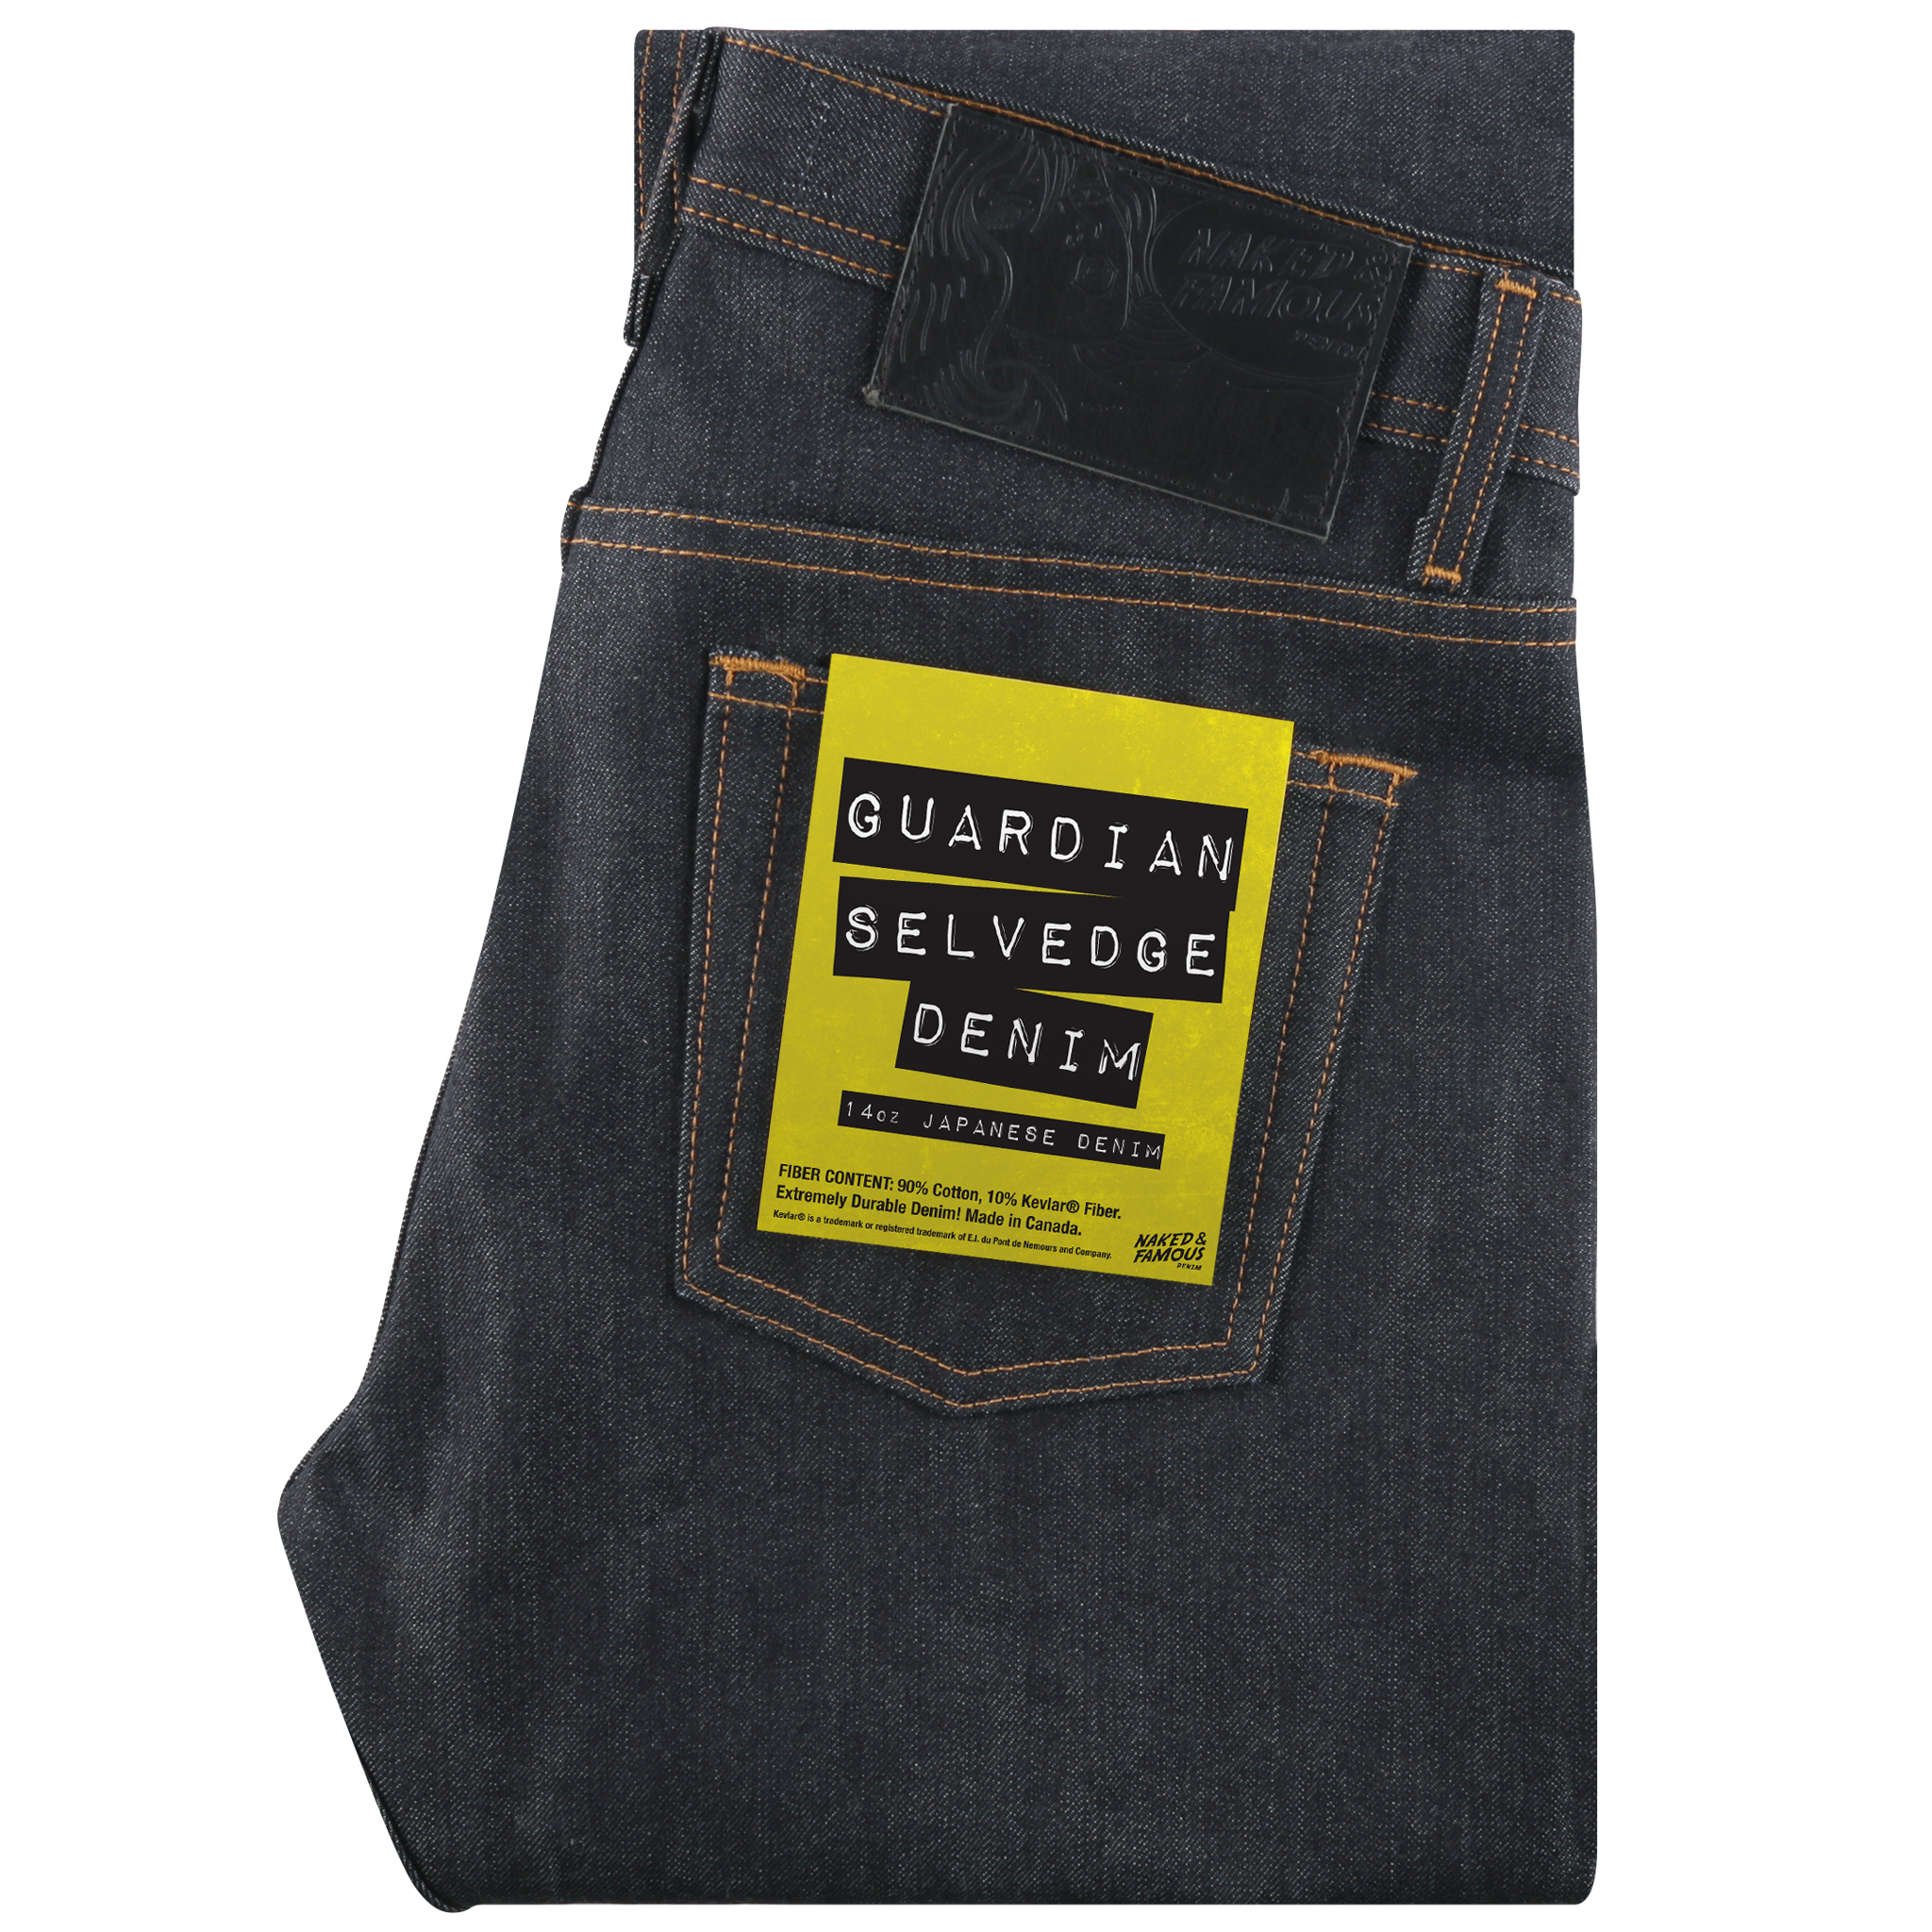 GUARDIAN SELVEDGE DENIM - Super Guy / Weird Guy / Easy Guy